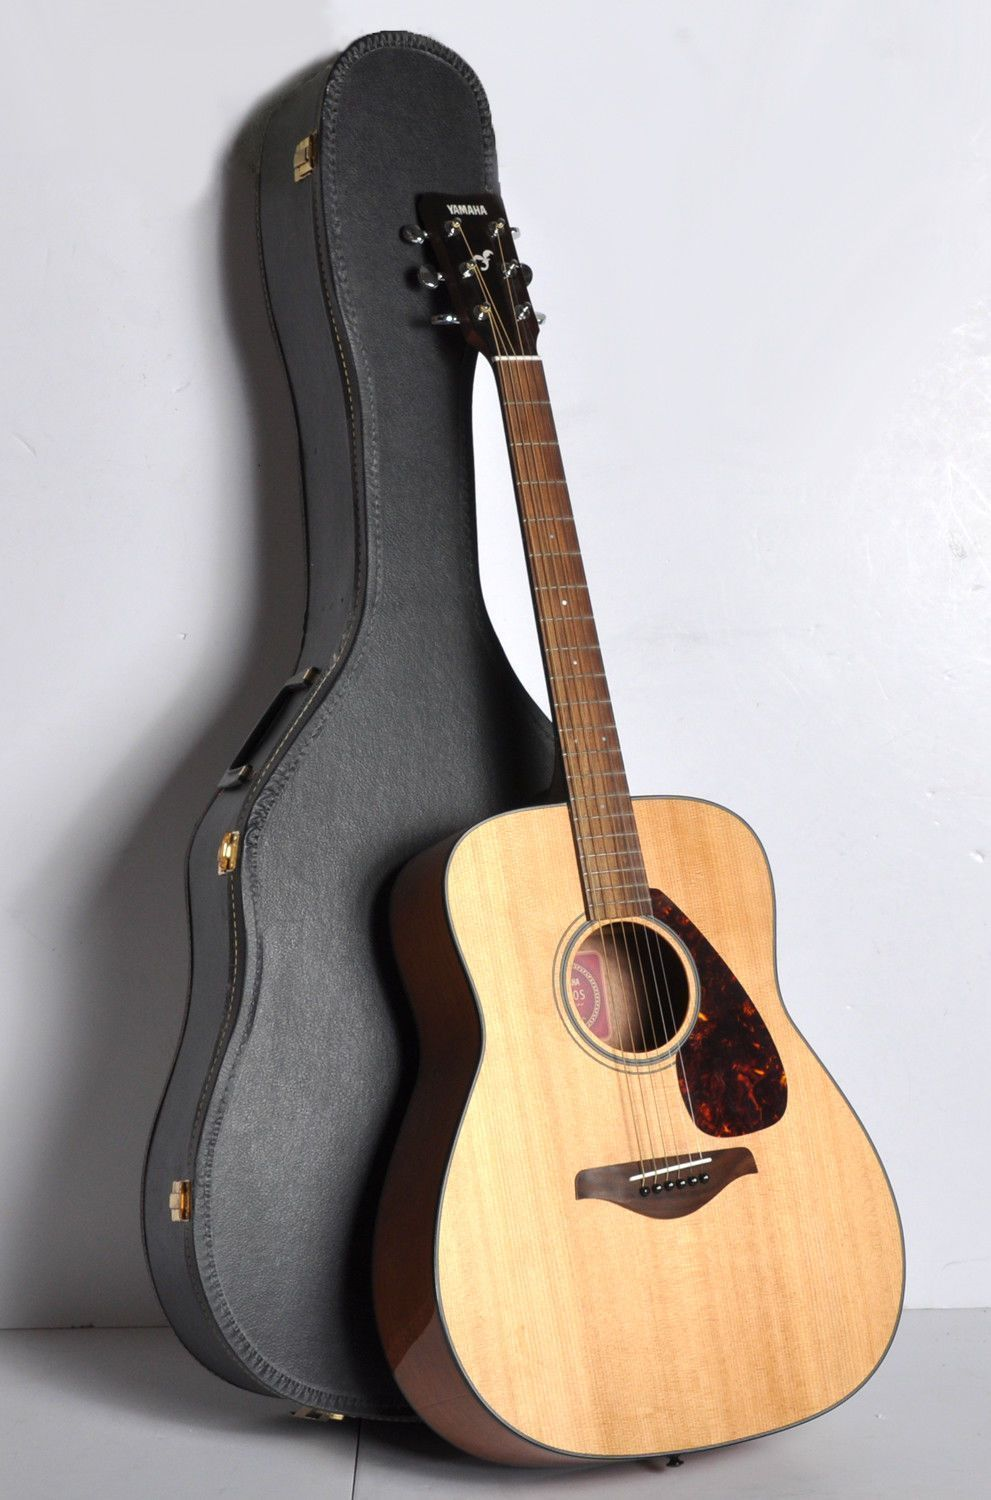 Guitar Yamaha Fg 700s Spruce Top Acoustic Guitar W Case Excellent Great Gift Please Retweet Yamaha Guitar Yamaha Acoustic Acoustic Electric Guitar